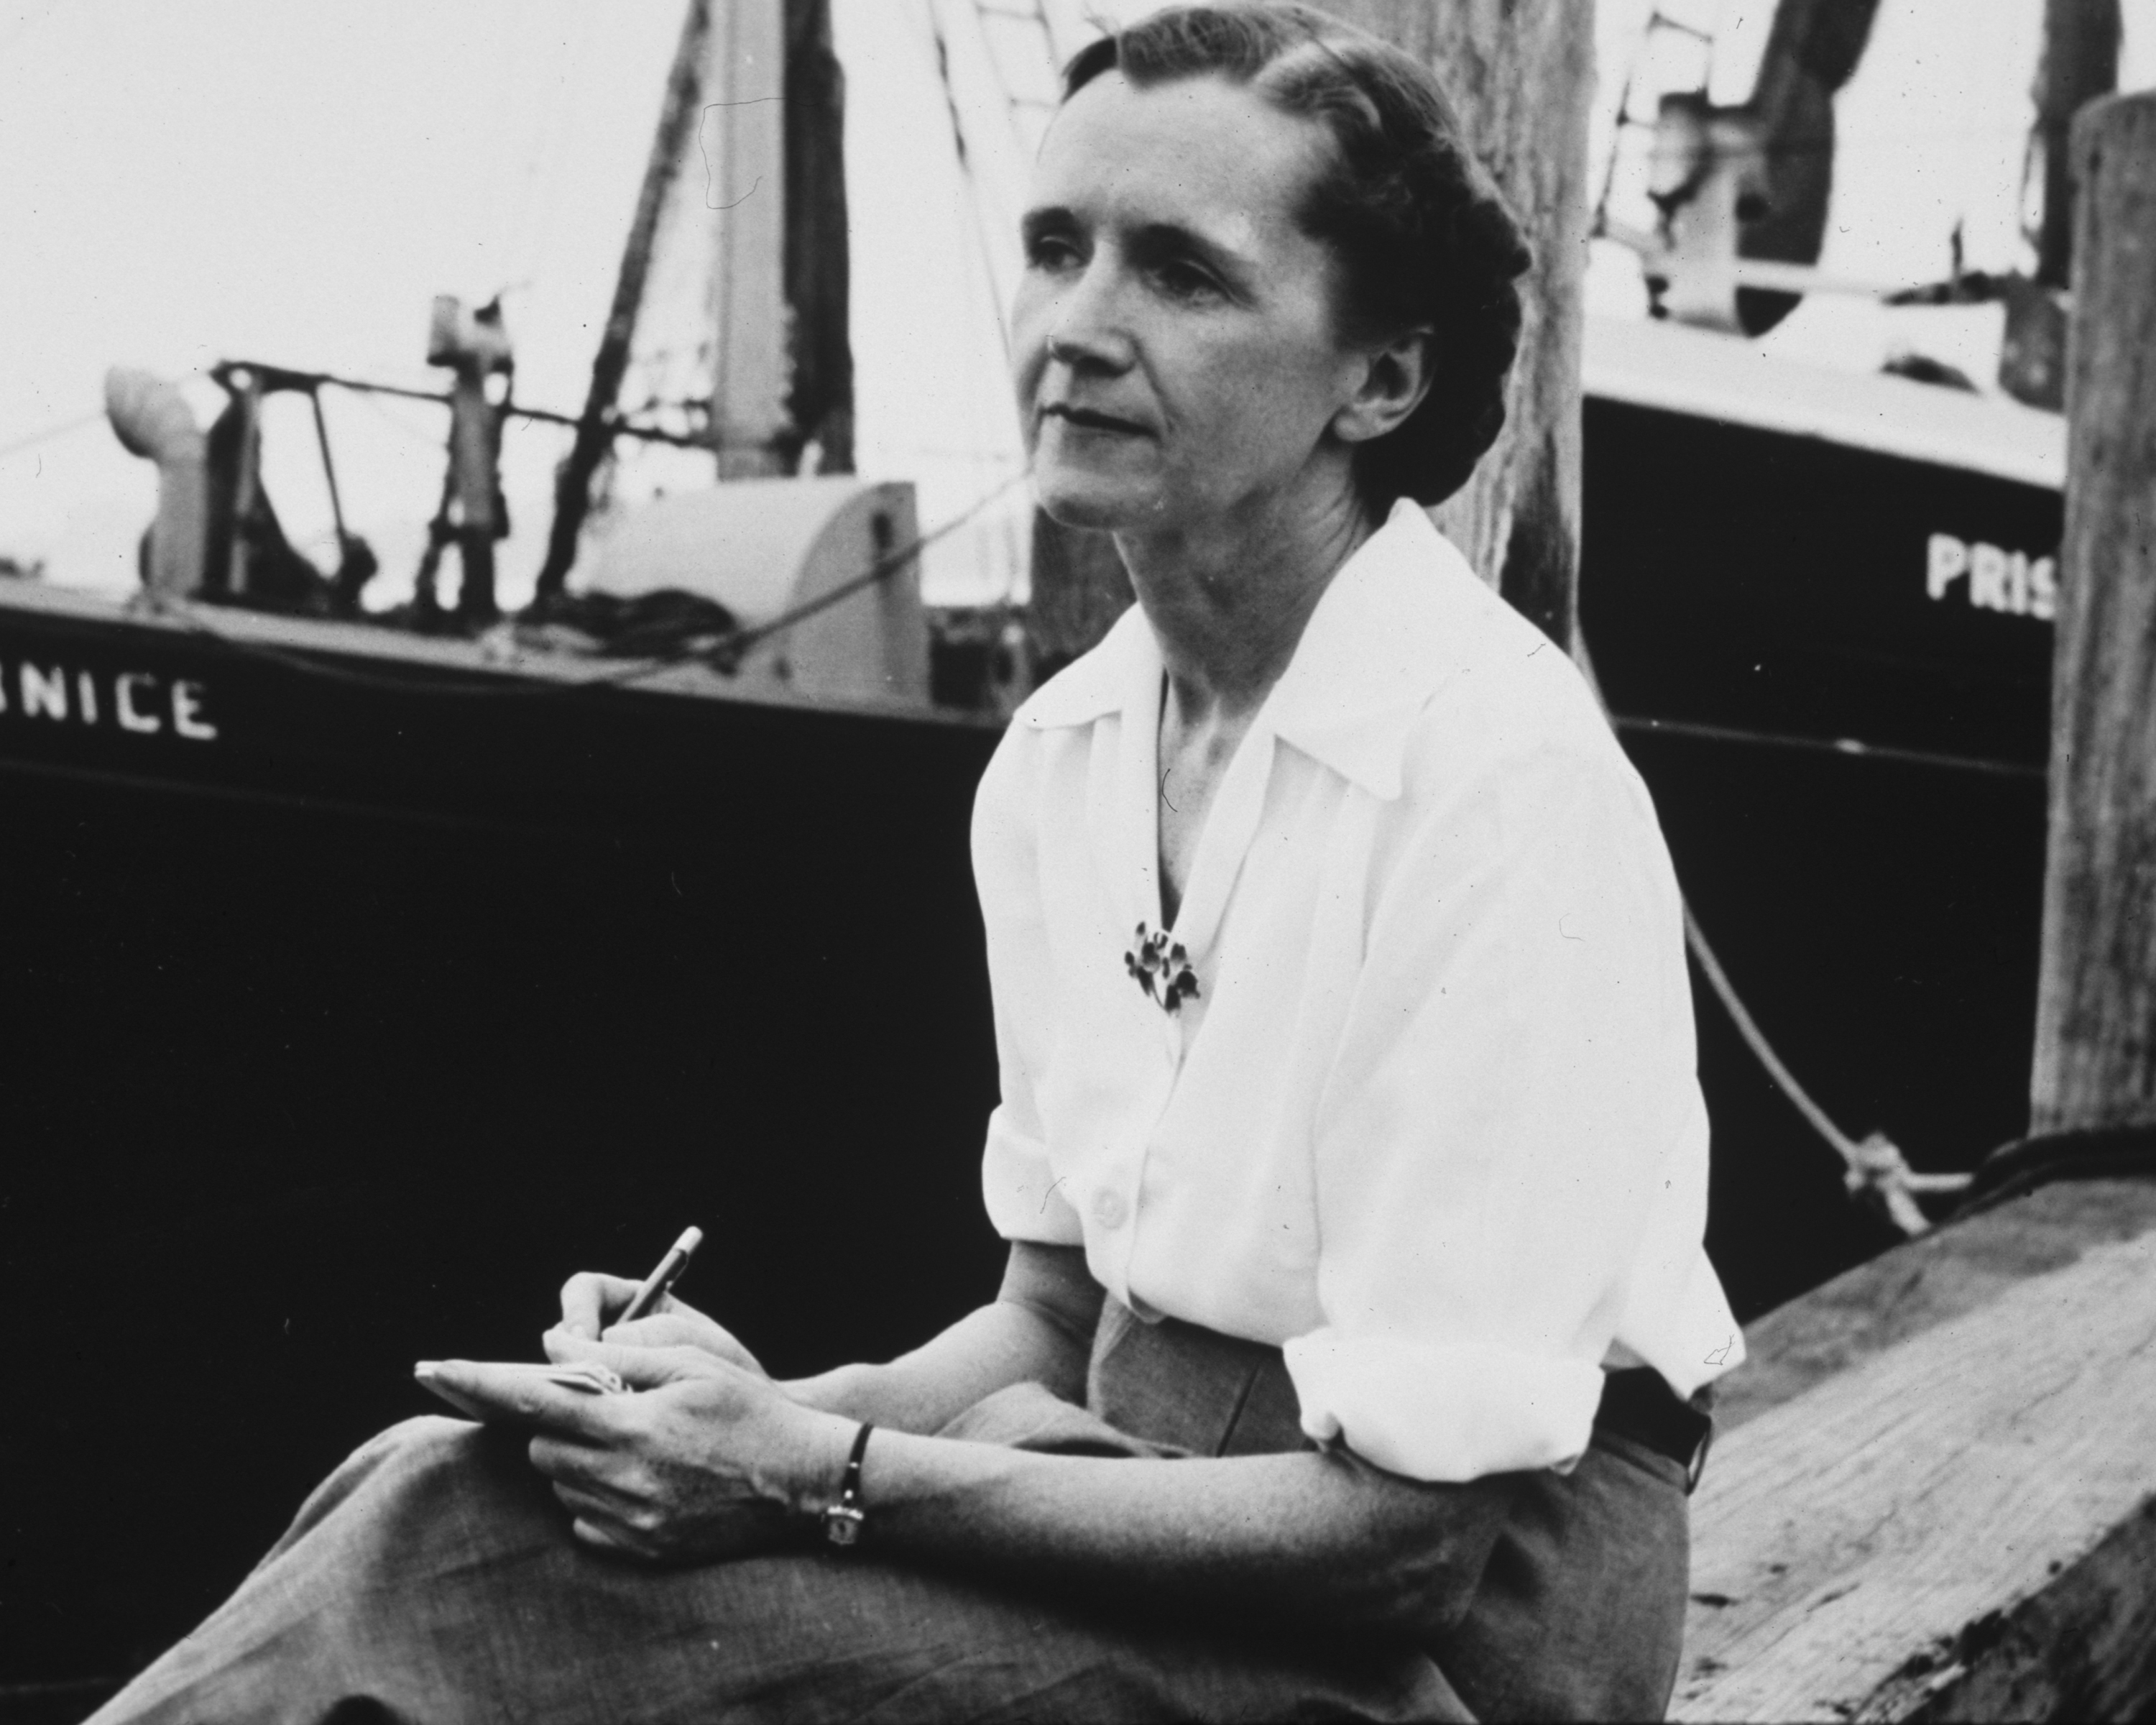 An older Rachel Carson looks pensive as she sits near a ship, with a book in her lap.